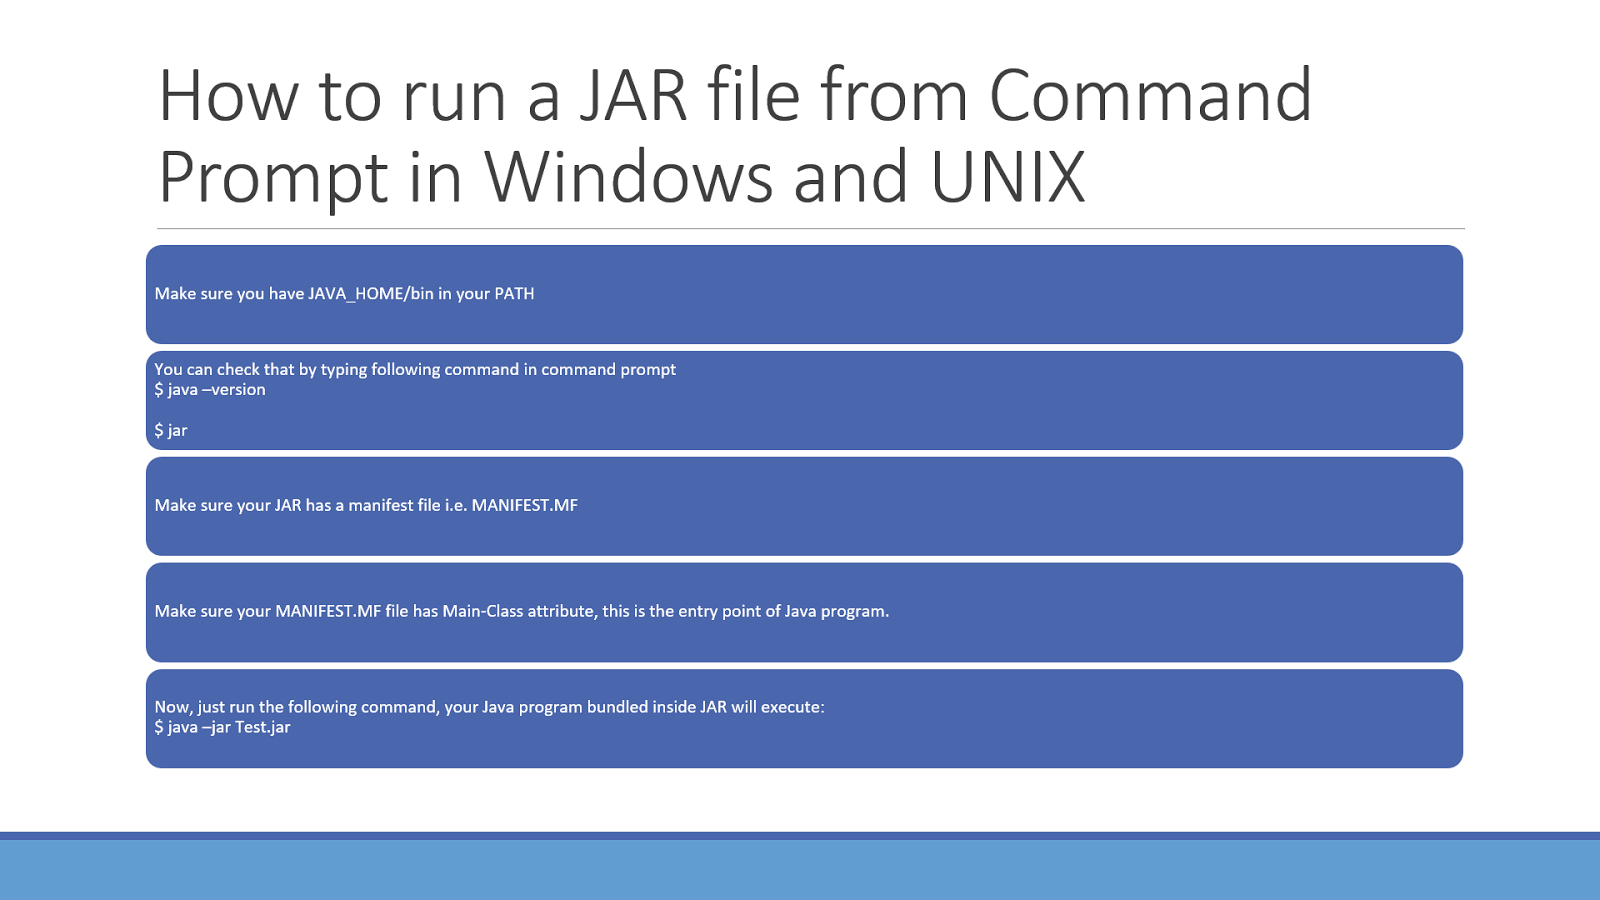 How to Run a JAR file from Command Prompt - Windows and UNIX | Java67